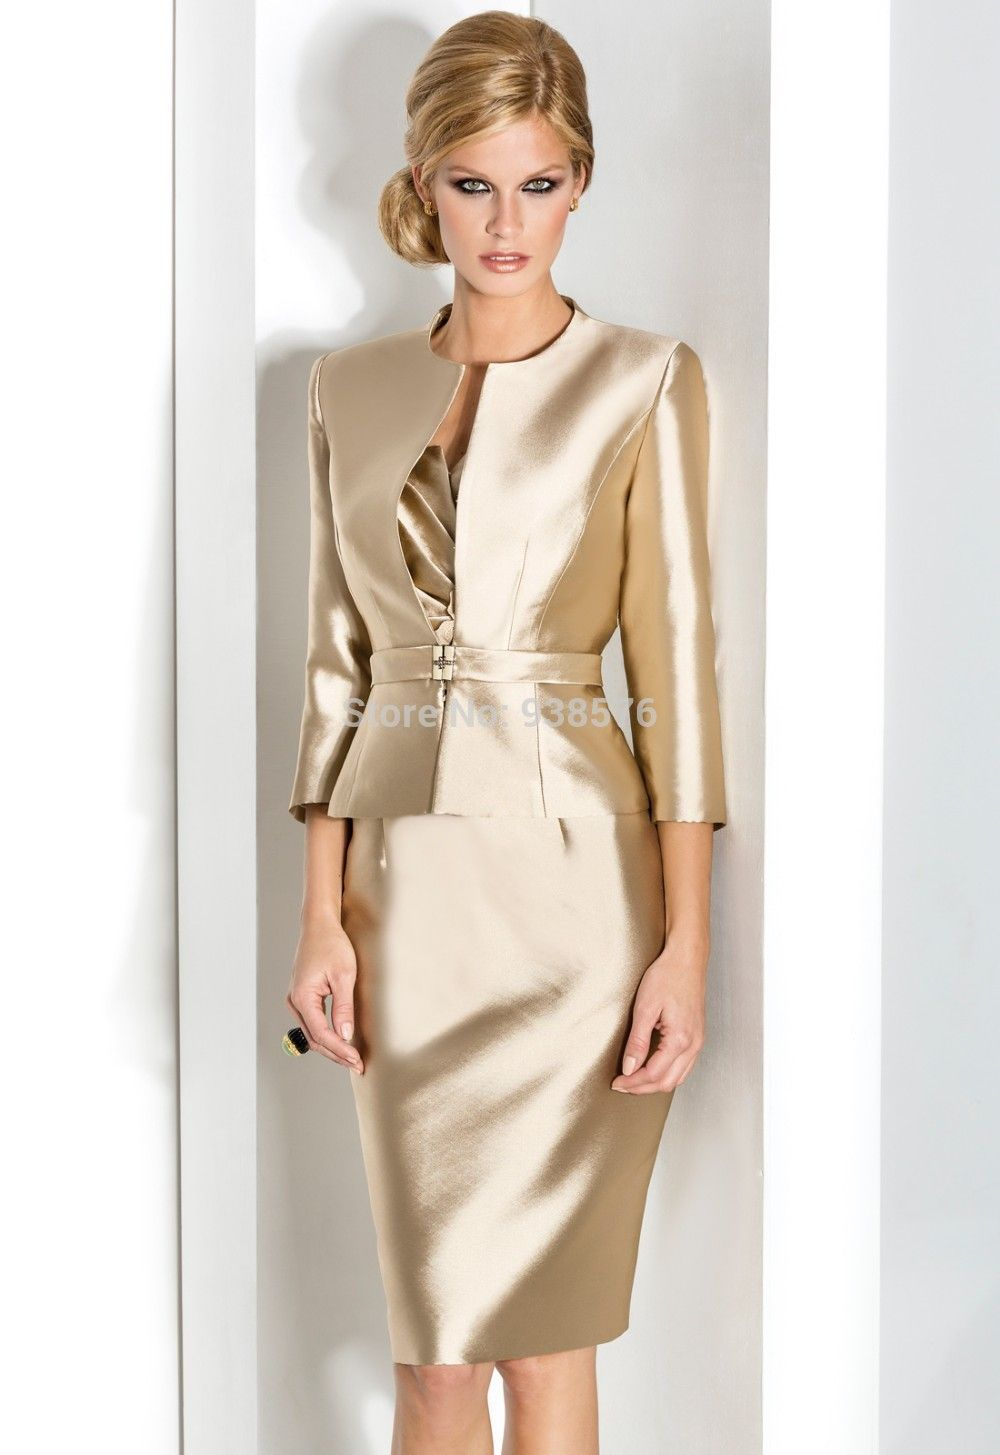 Gold mother of the bride dress with jacket yes Mother of the bride ...